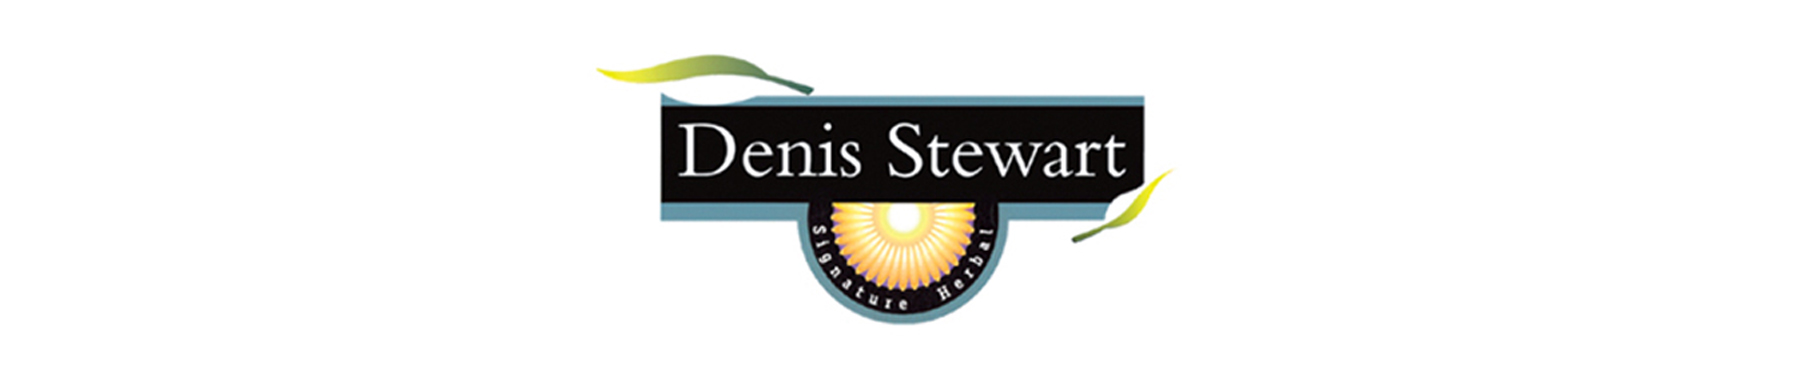 denis stewart signature herbal banner on white background